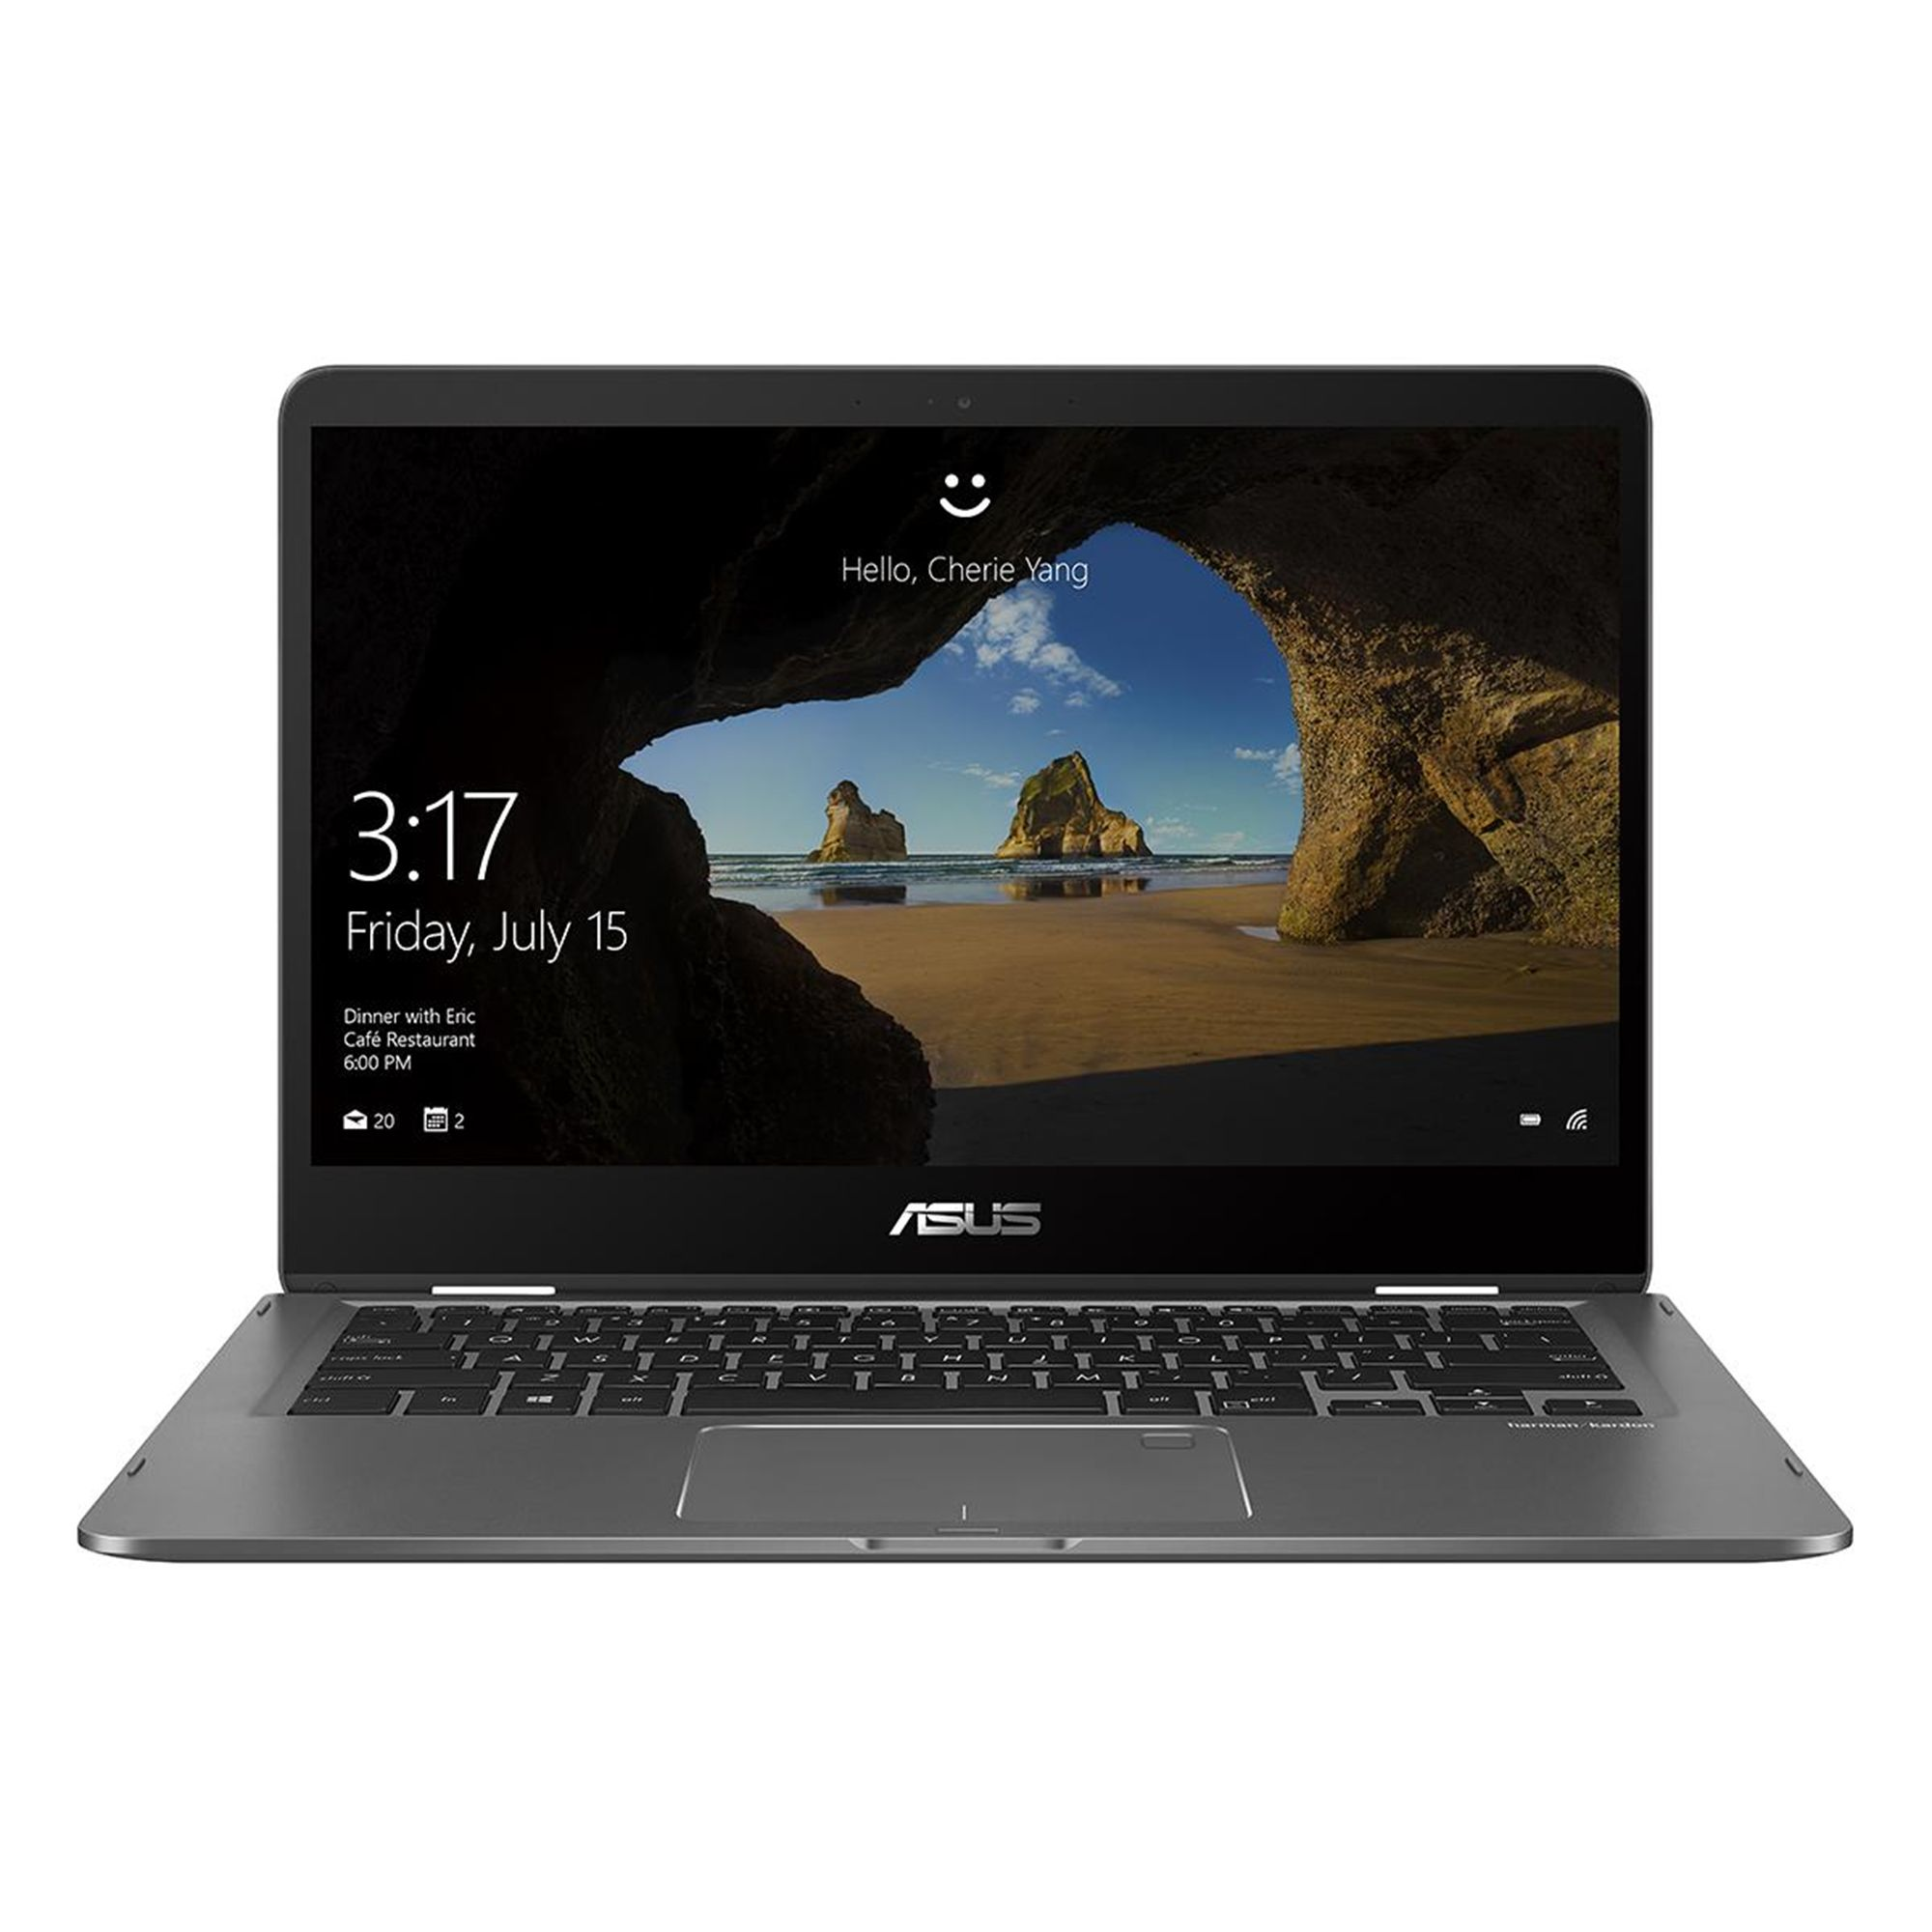 Ultrabook Asus ZenBook UX461UA 14 Full HD Touch Intel Core i7-8550U RAM 8GB SSD 512GB Windows 10 Pro Gri